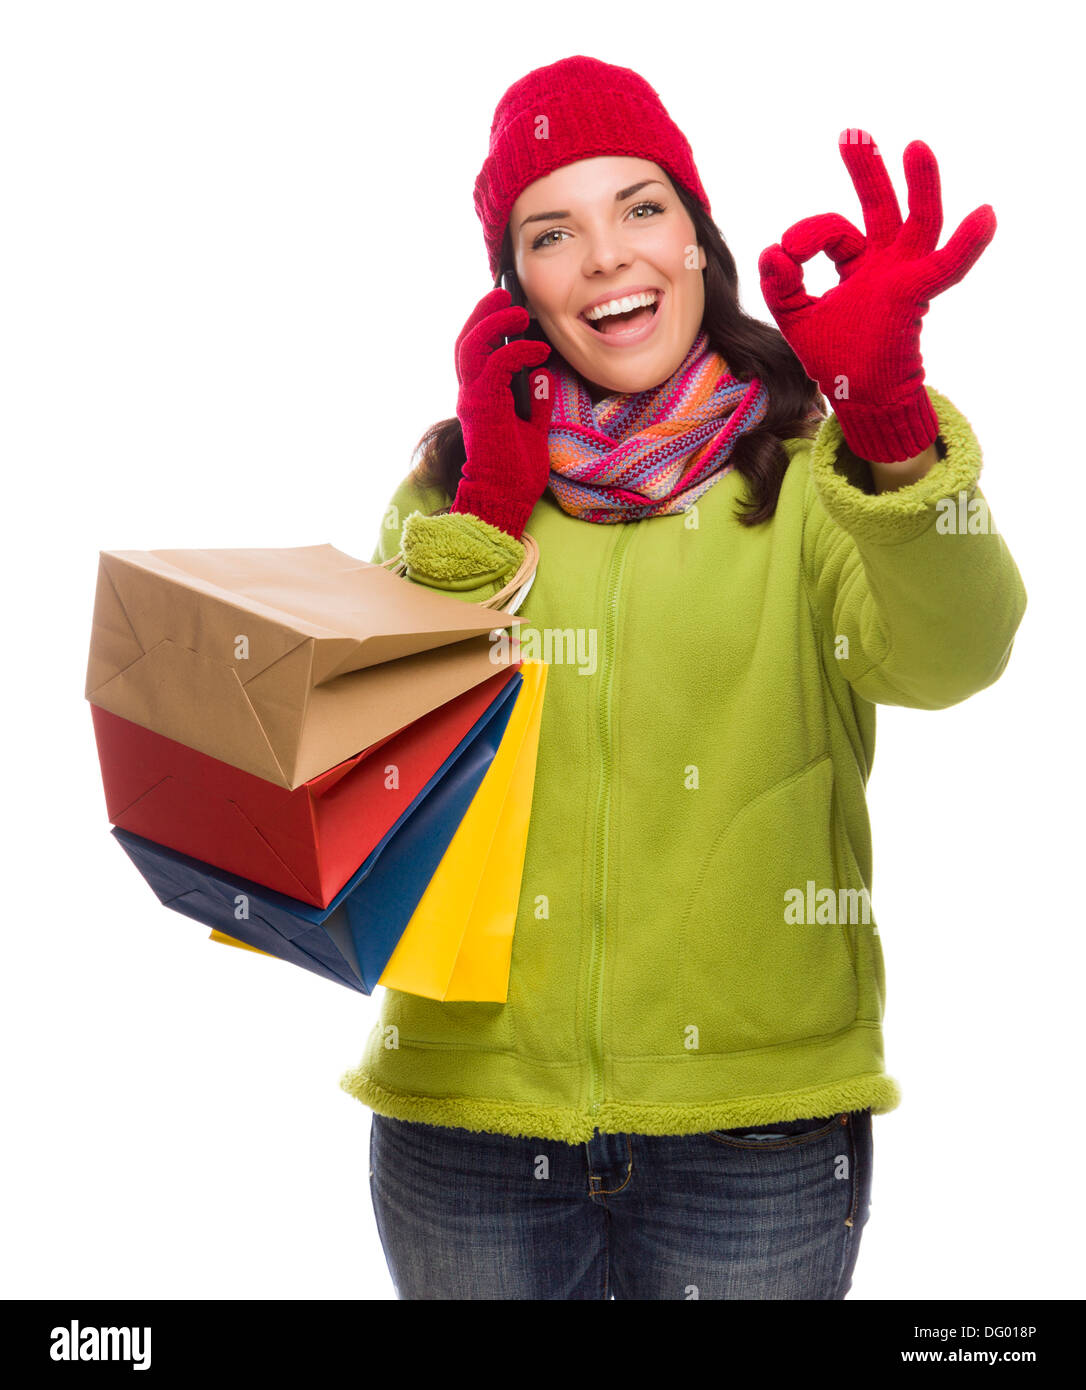 Mixed Race Woman Holding Shopping Bags Talking On Her Cell Phone Giving Ok Gesture Isolated on White Background. - Stock Image